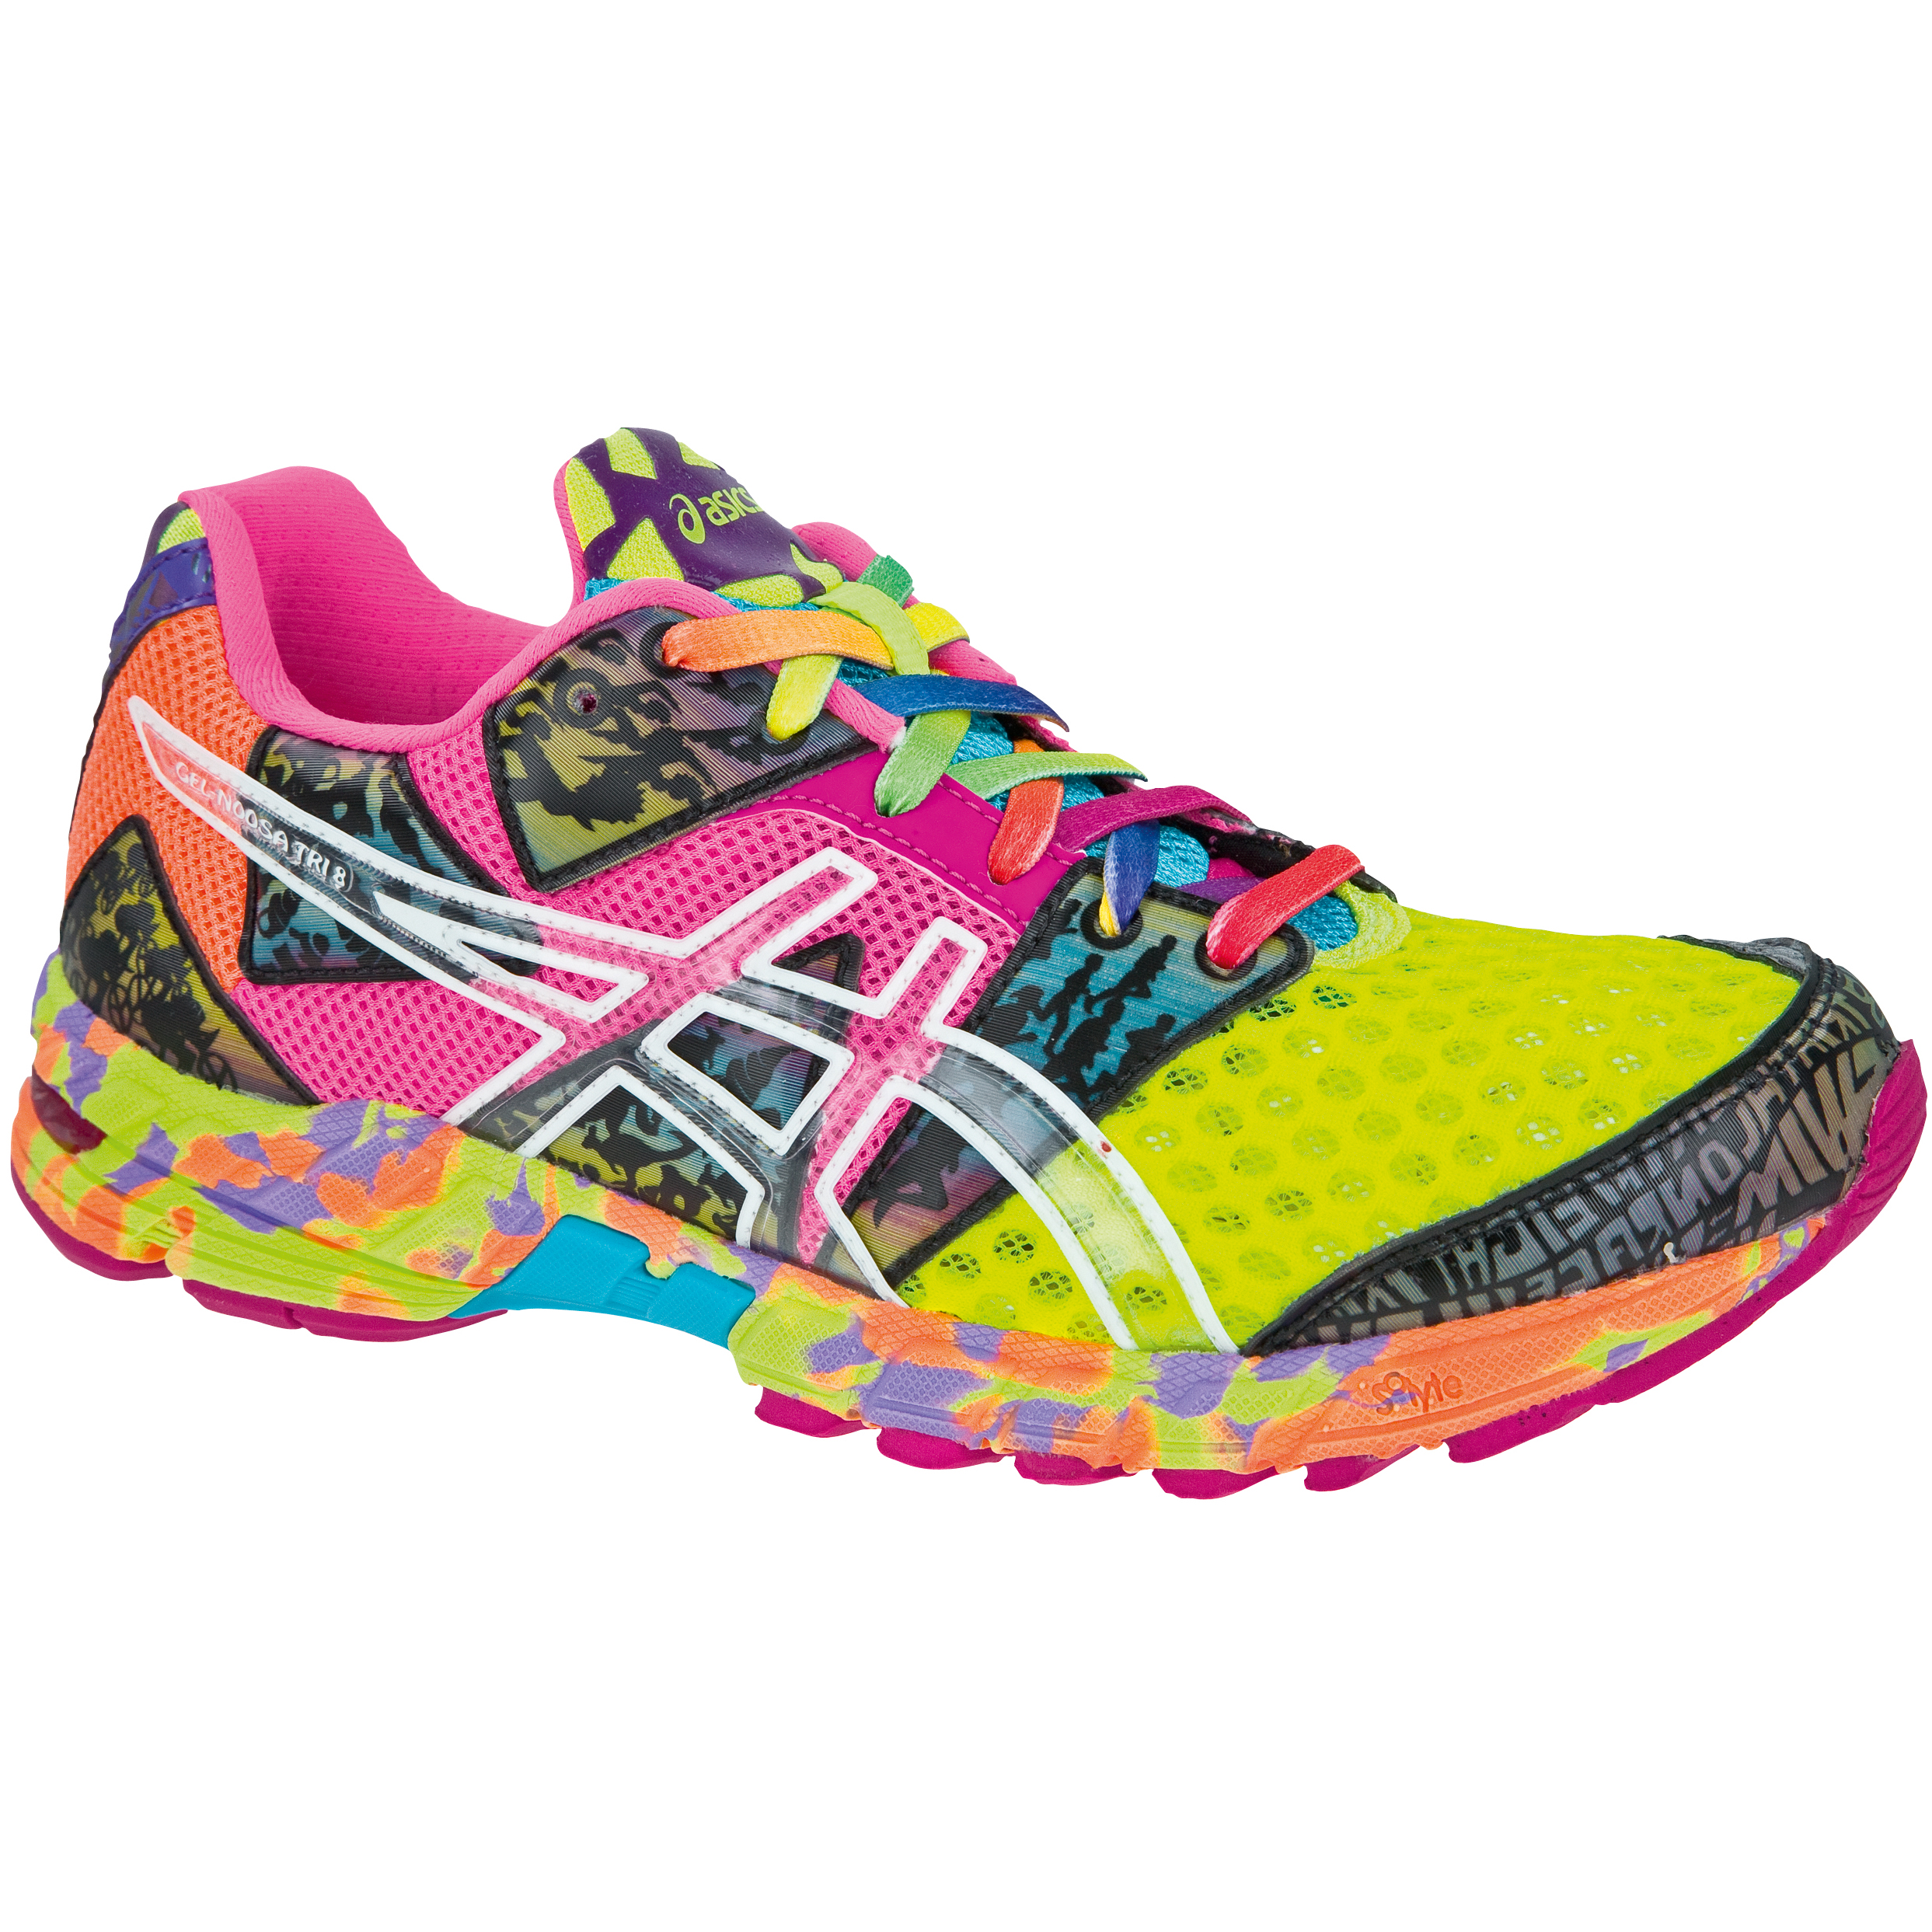 Asics Gel Noosa Tri 8 zapatillas